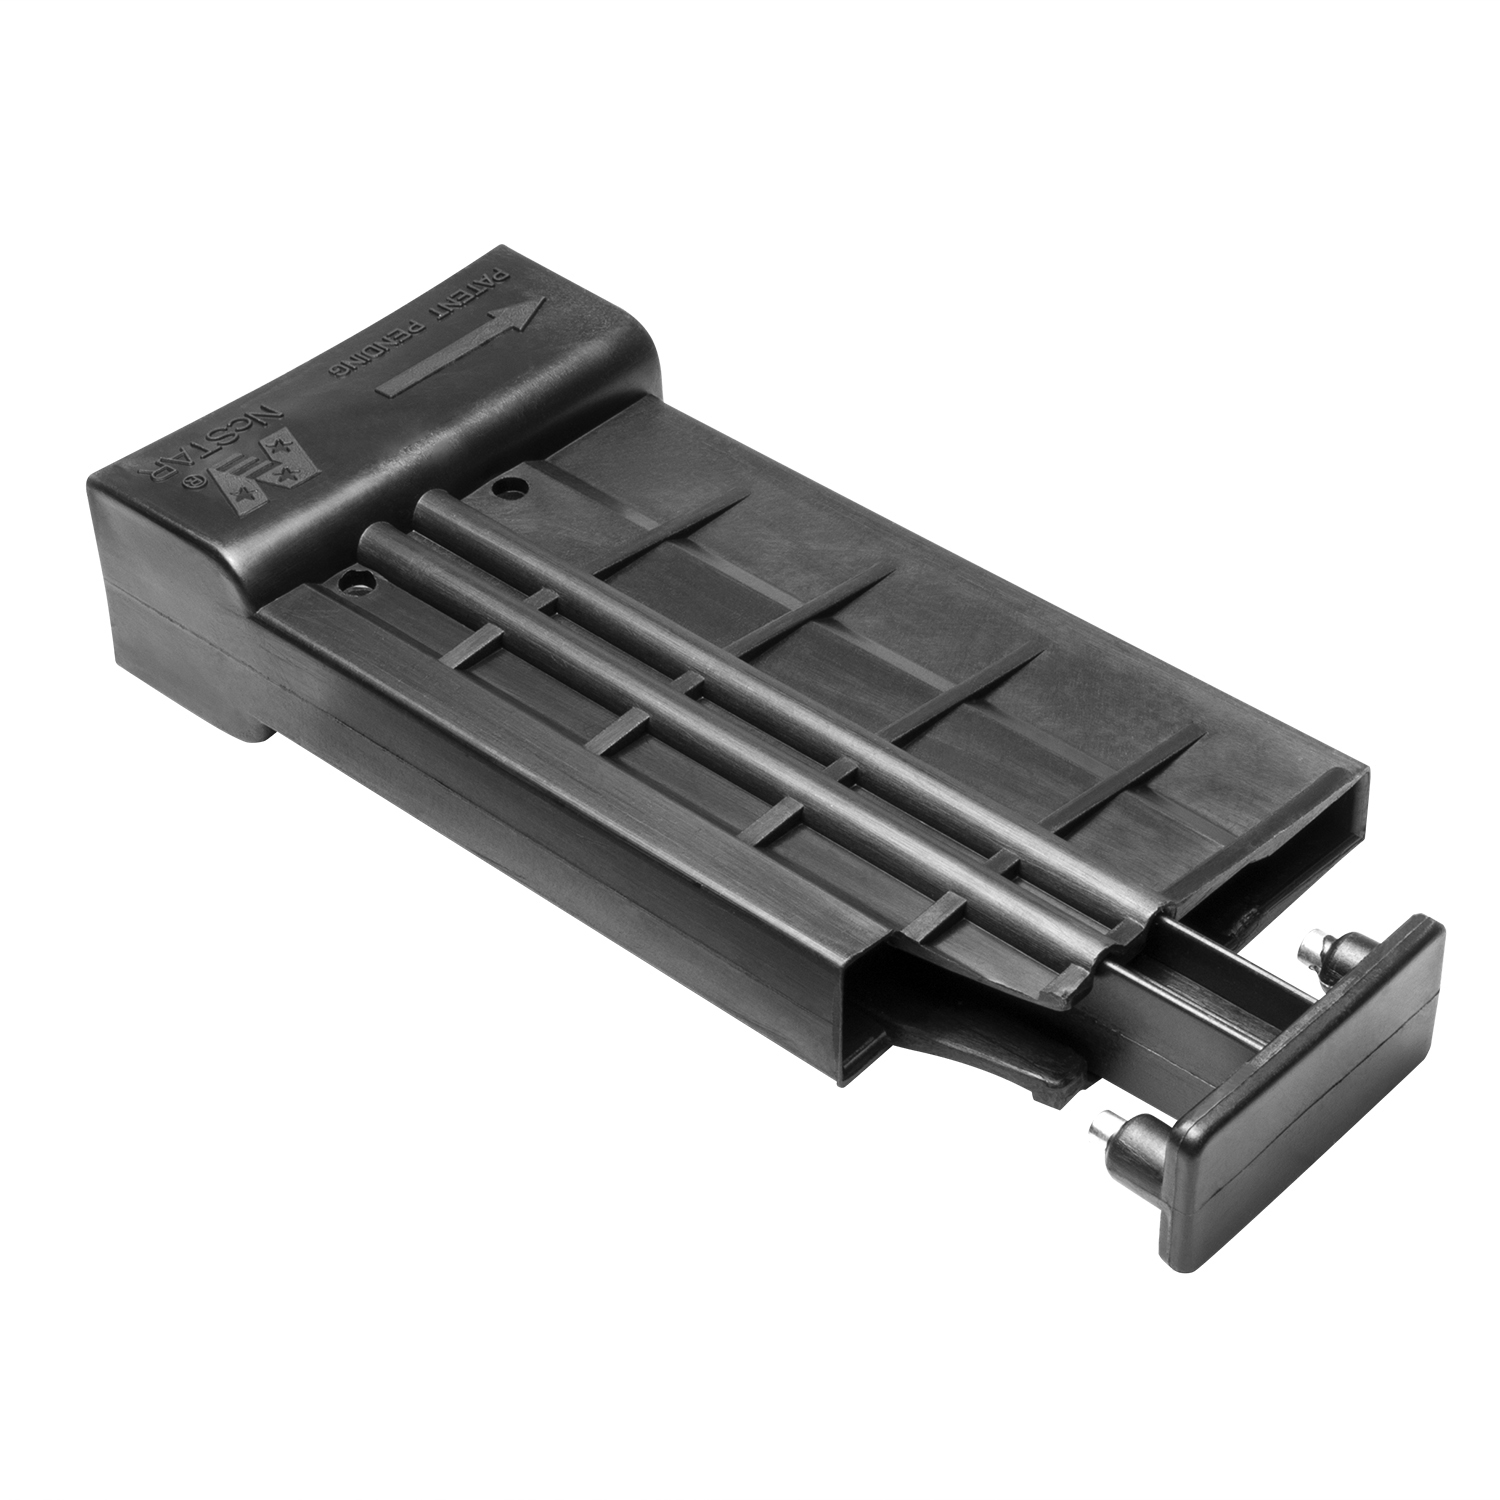 Ncstar FN Cetme Magazine Speed Loader